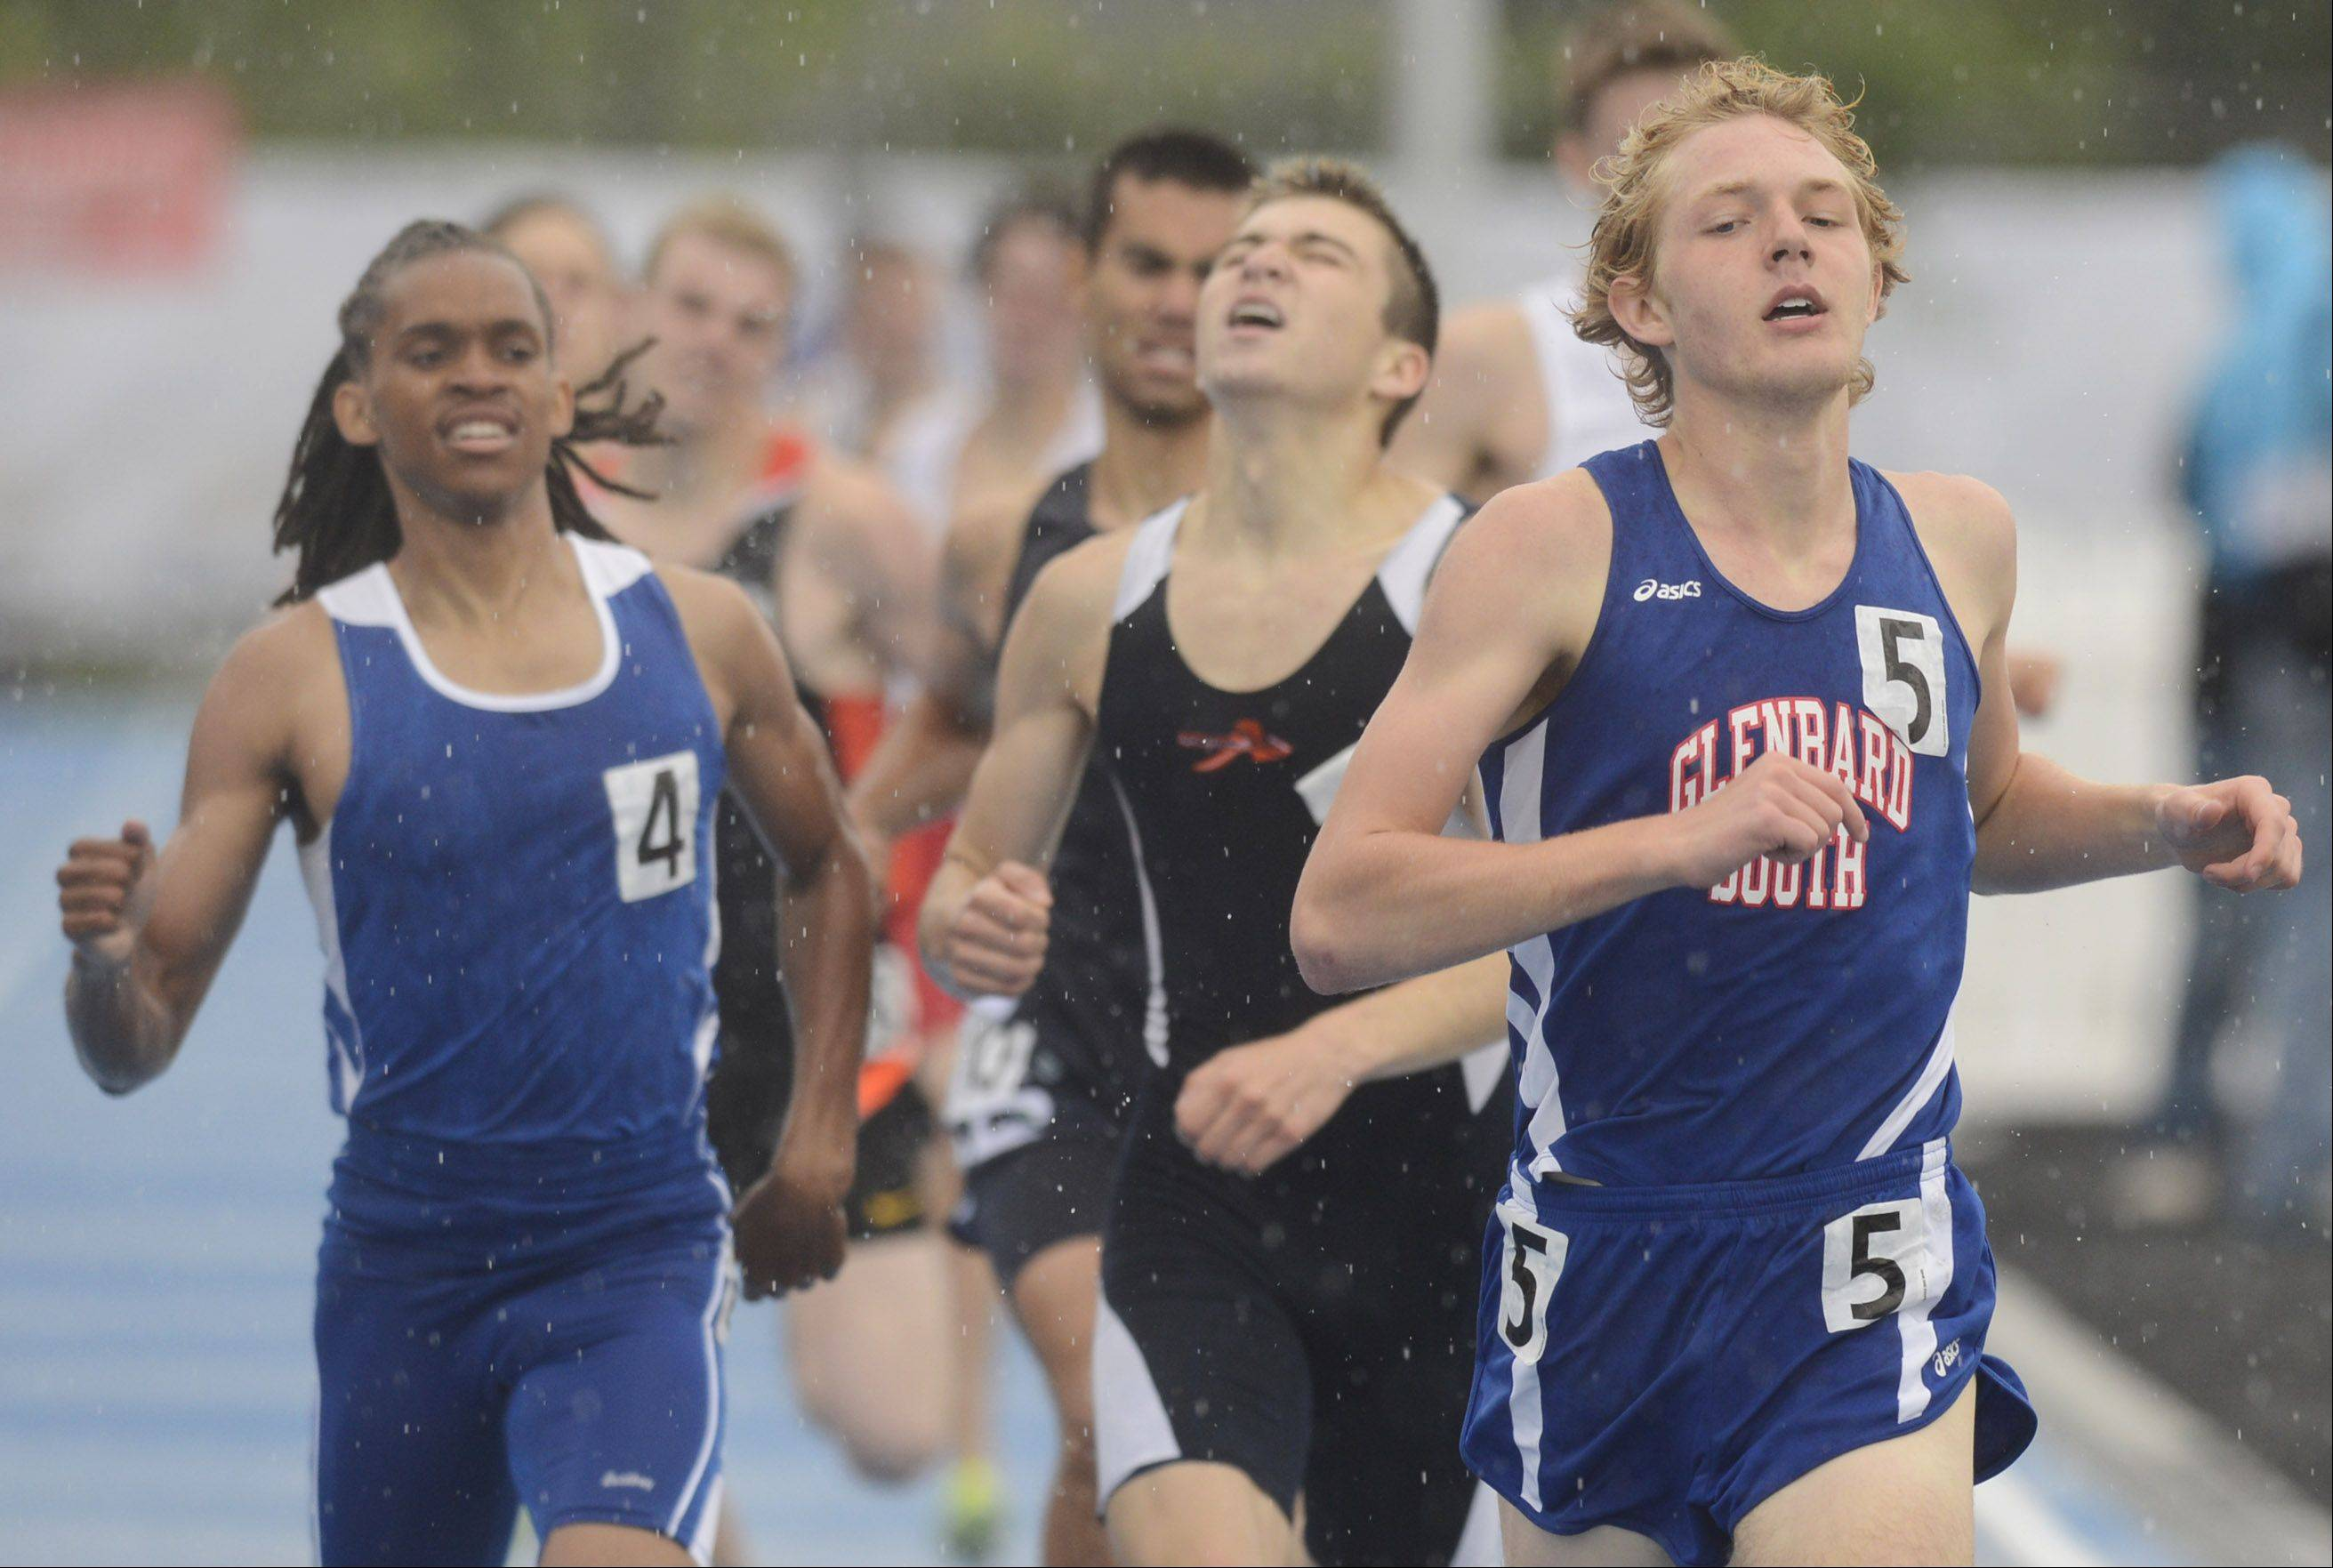 Glenbard South's John Wold, right, heads for the finish line in the Class 2A 800-meter run during the boys state track finals in Charleston Saturday.